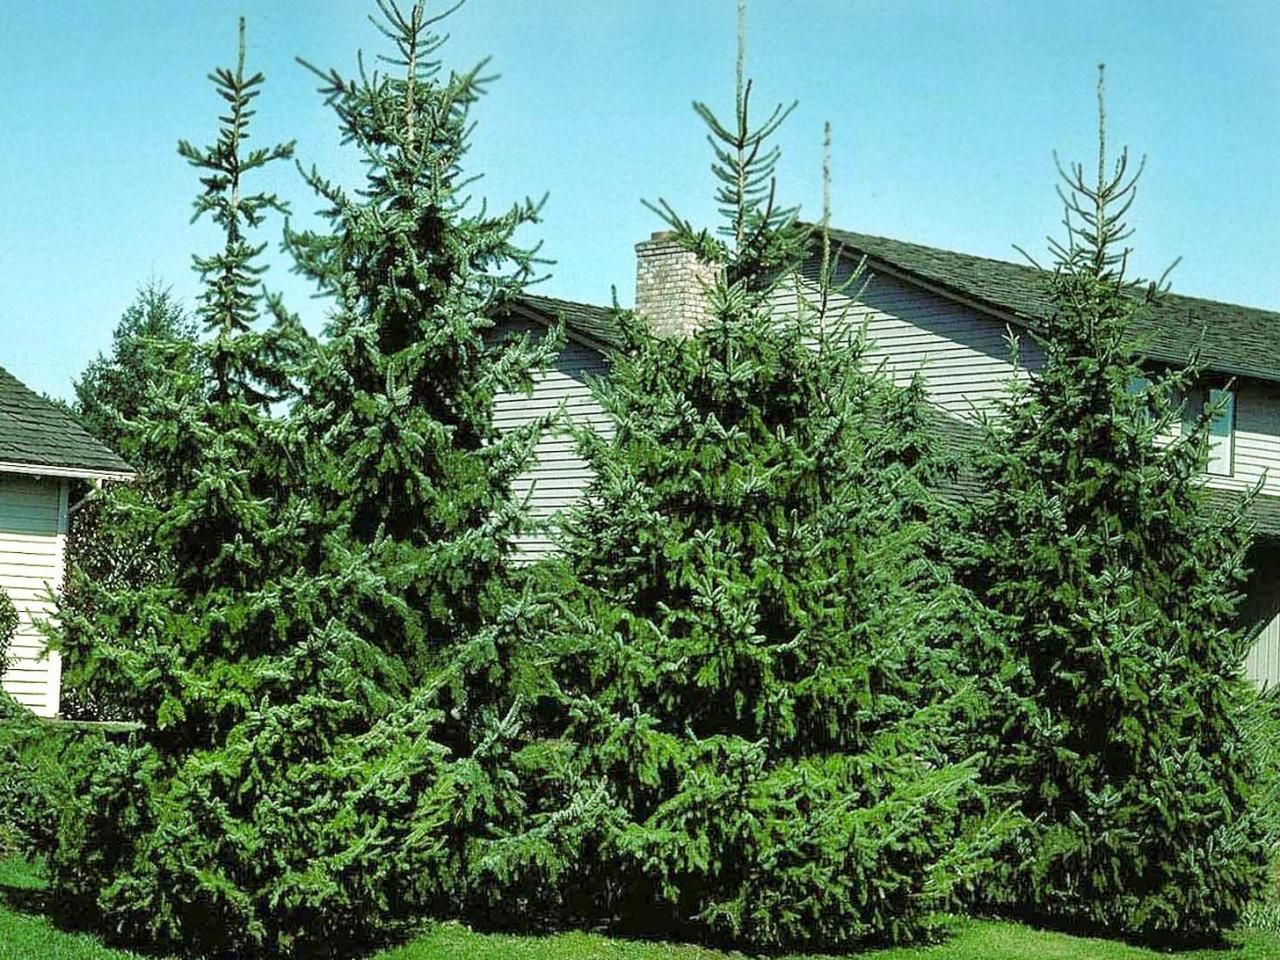 Christmas Tree Varieties You Can Plant In Your Garden: 'Black Hills' Spruce >> http://www ...